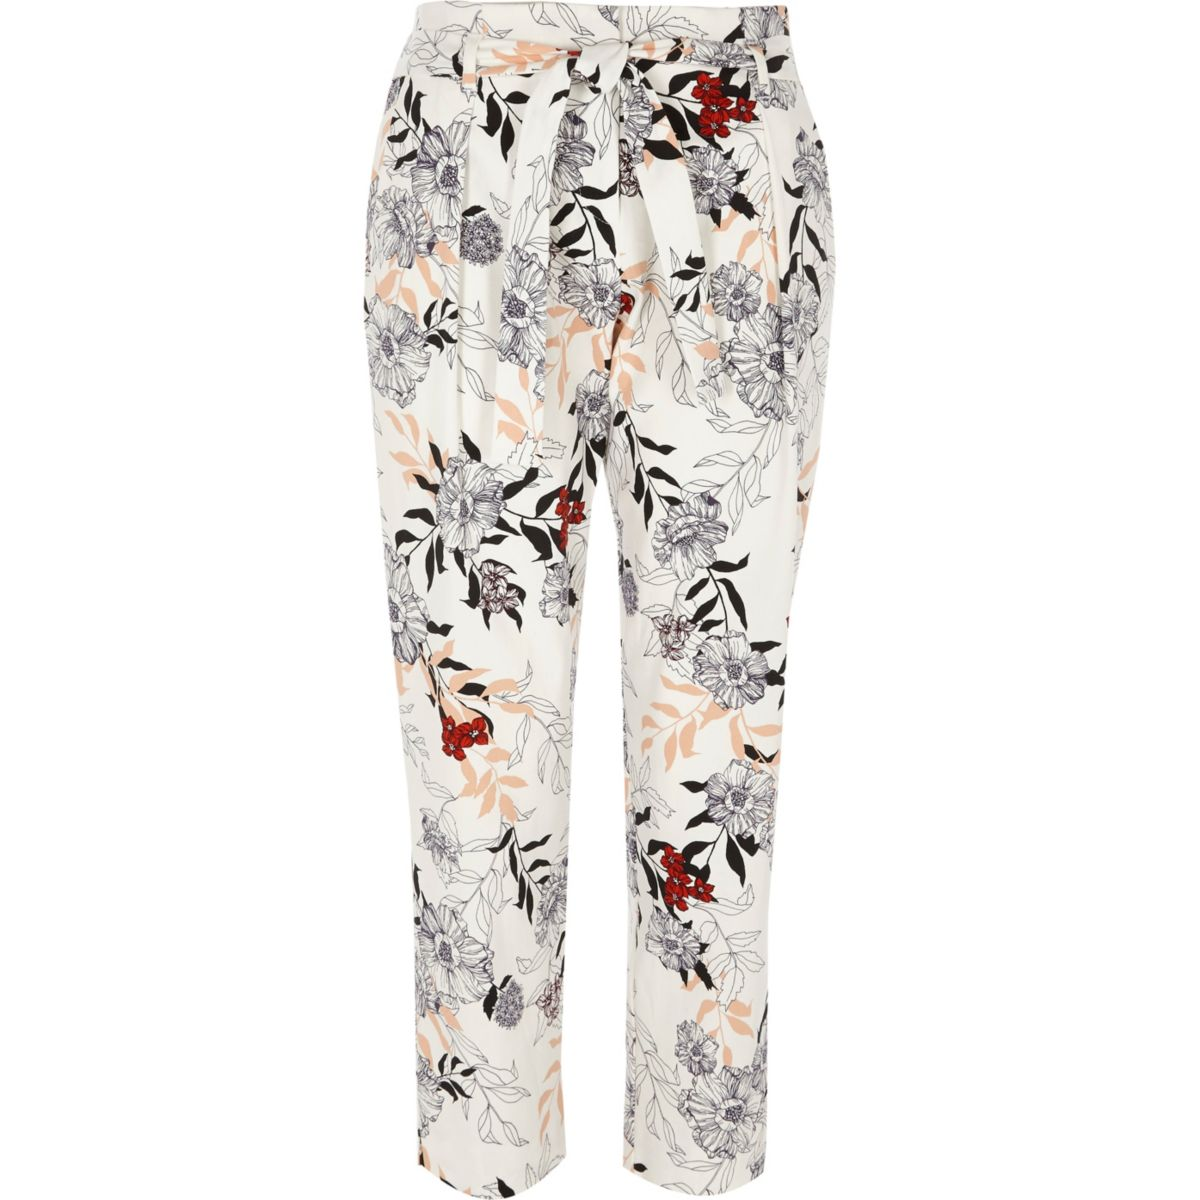 Cream floral print tie waist tapered pants